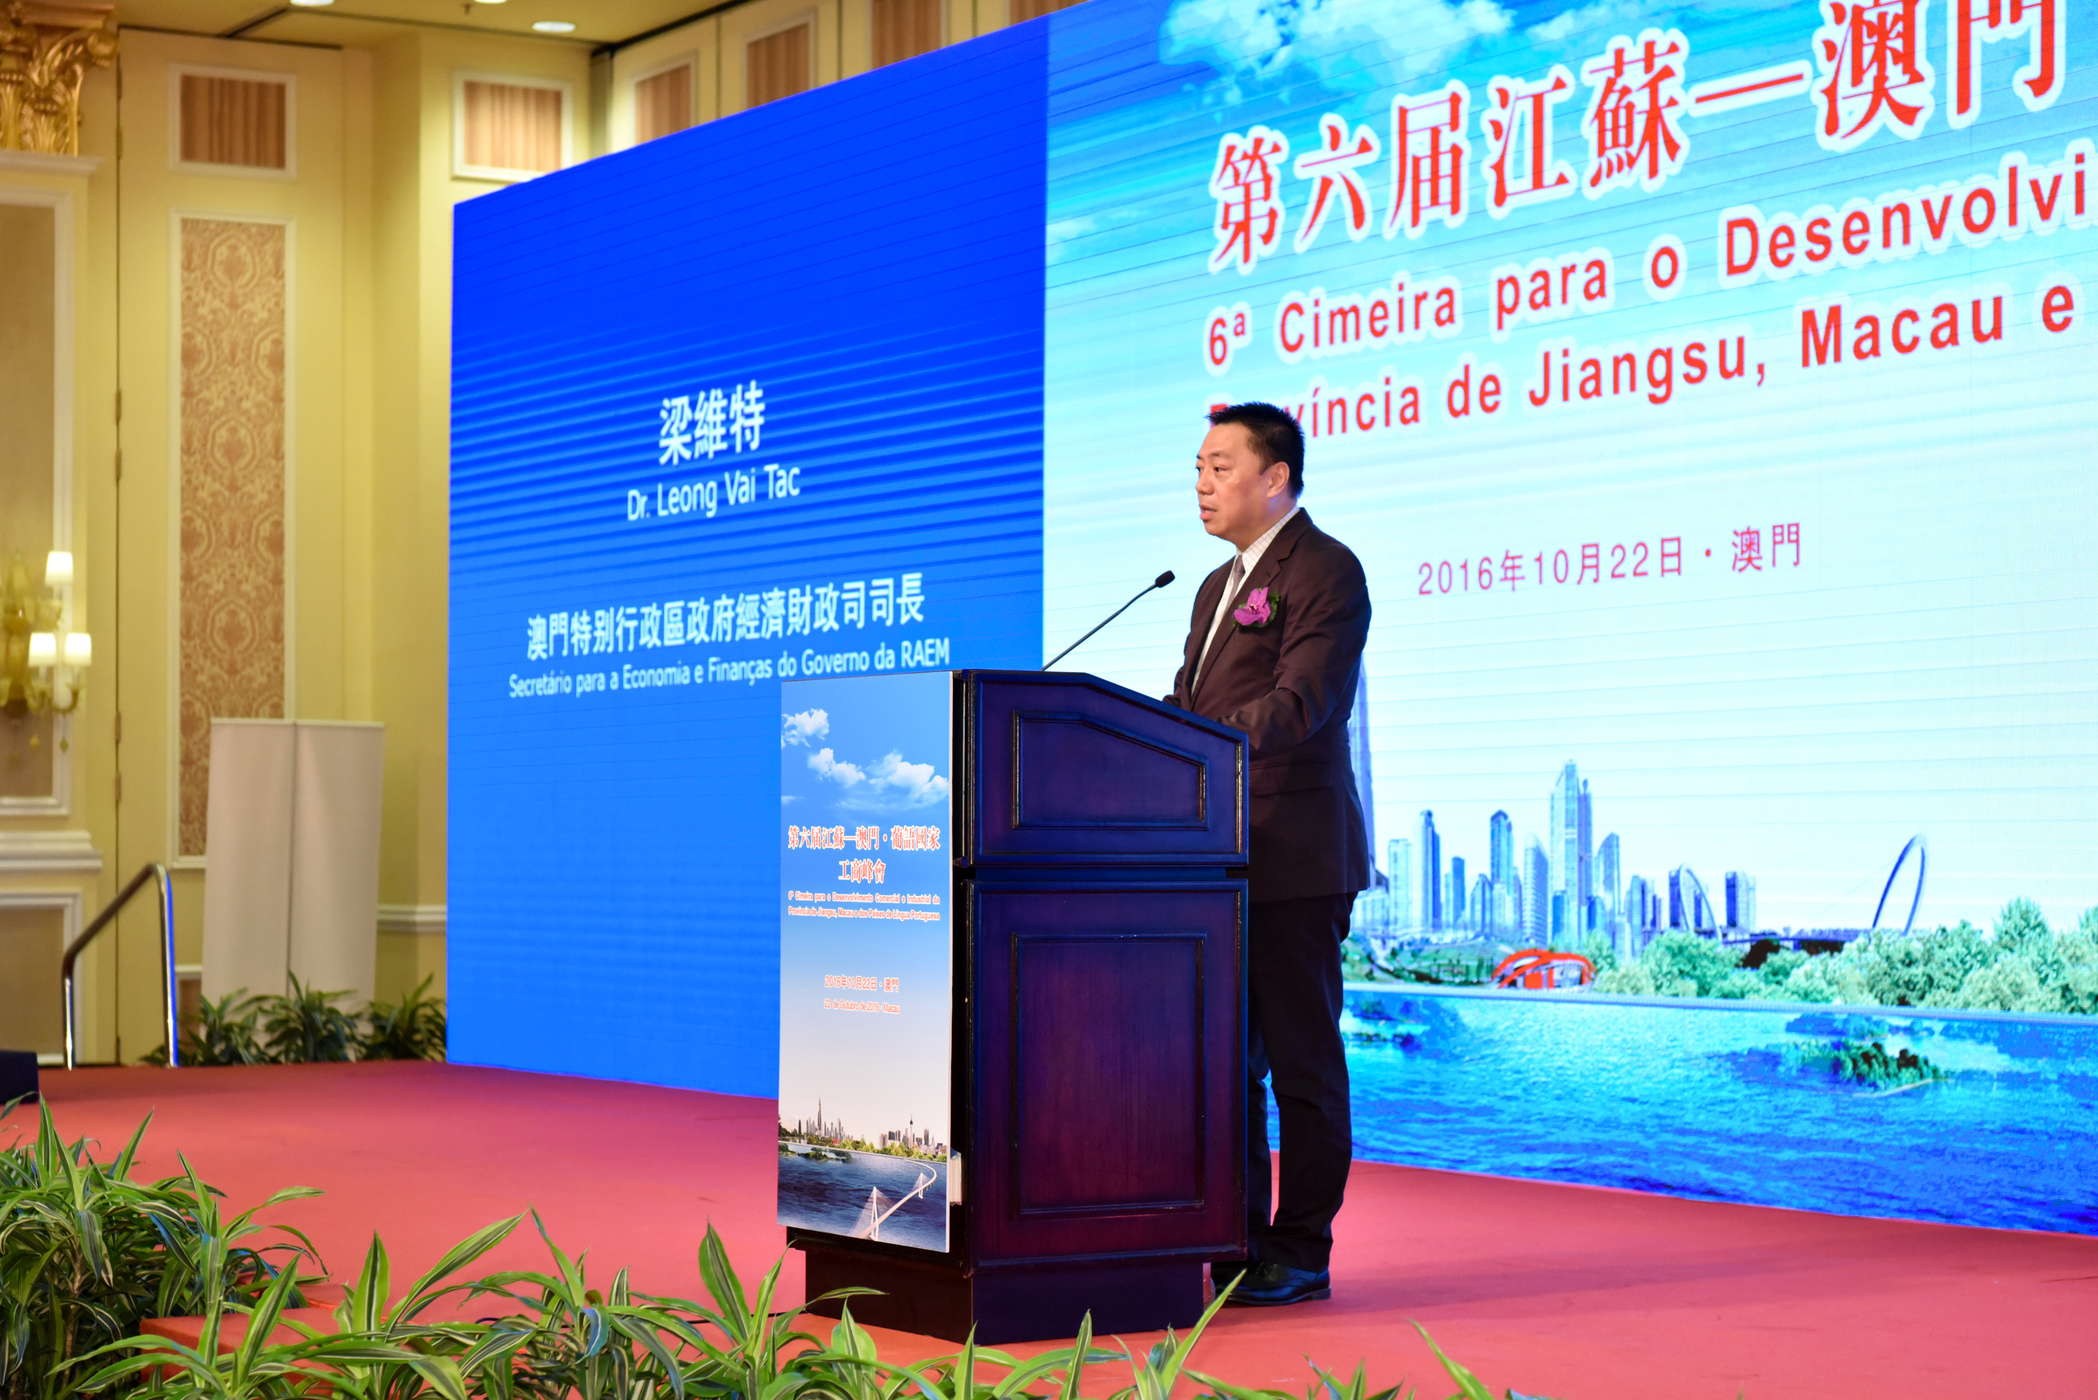 Macau creates cooperation park with Changzhou in Chinese province of Jiangsu